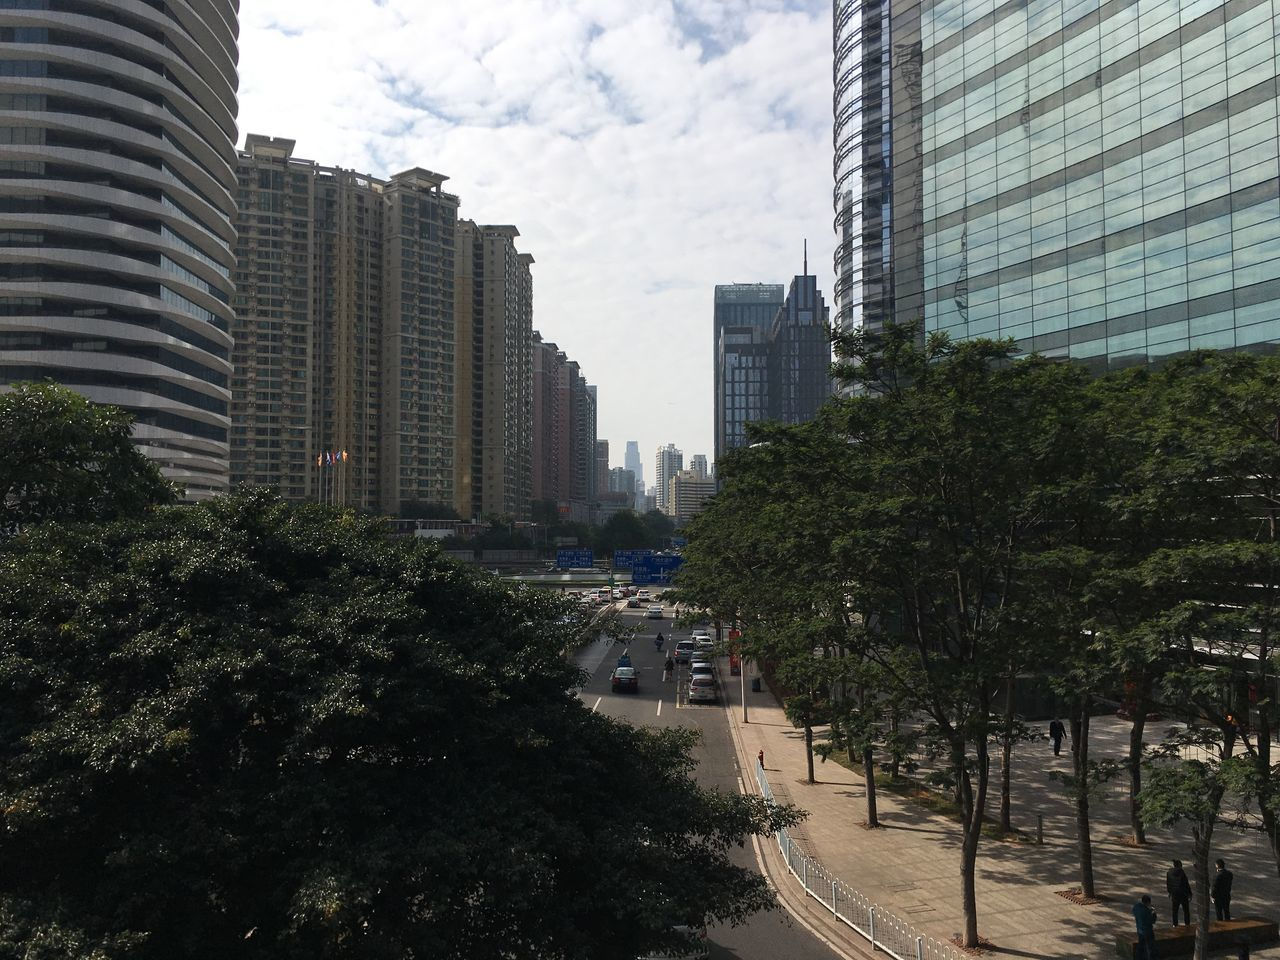 architecture, building exterior, city, skyscraper, built structure, modern, tree, sky, day, growth, outdoors, road, city life, no people, cityscape